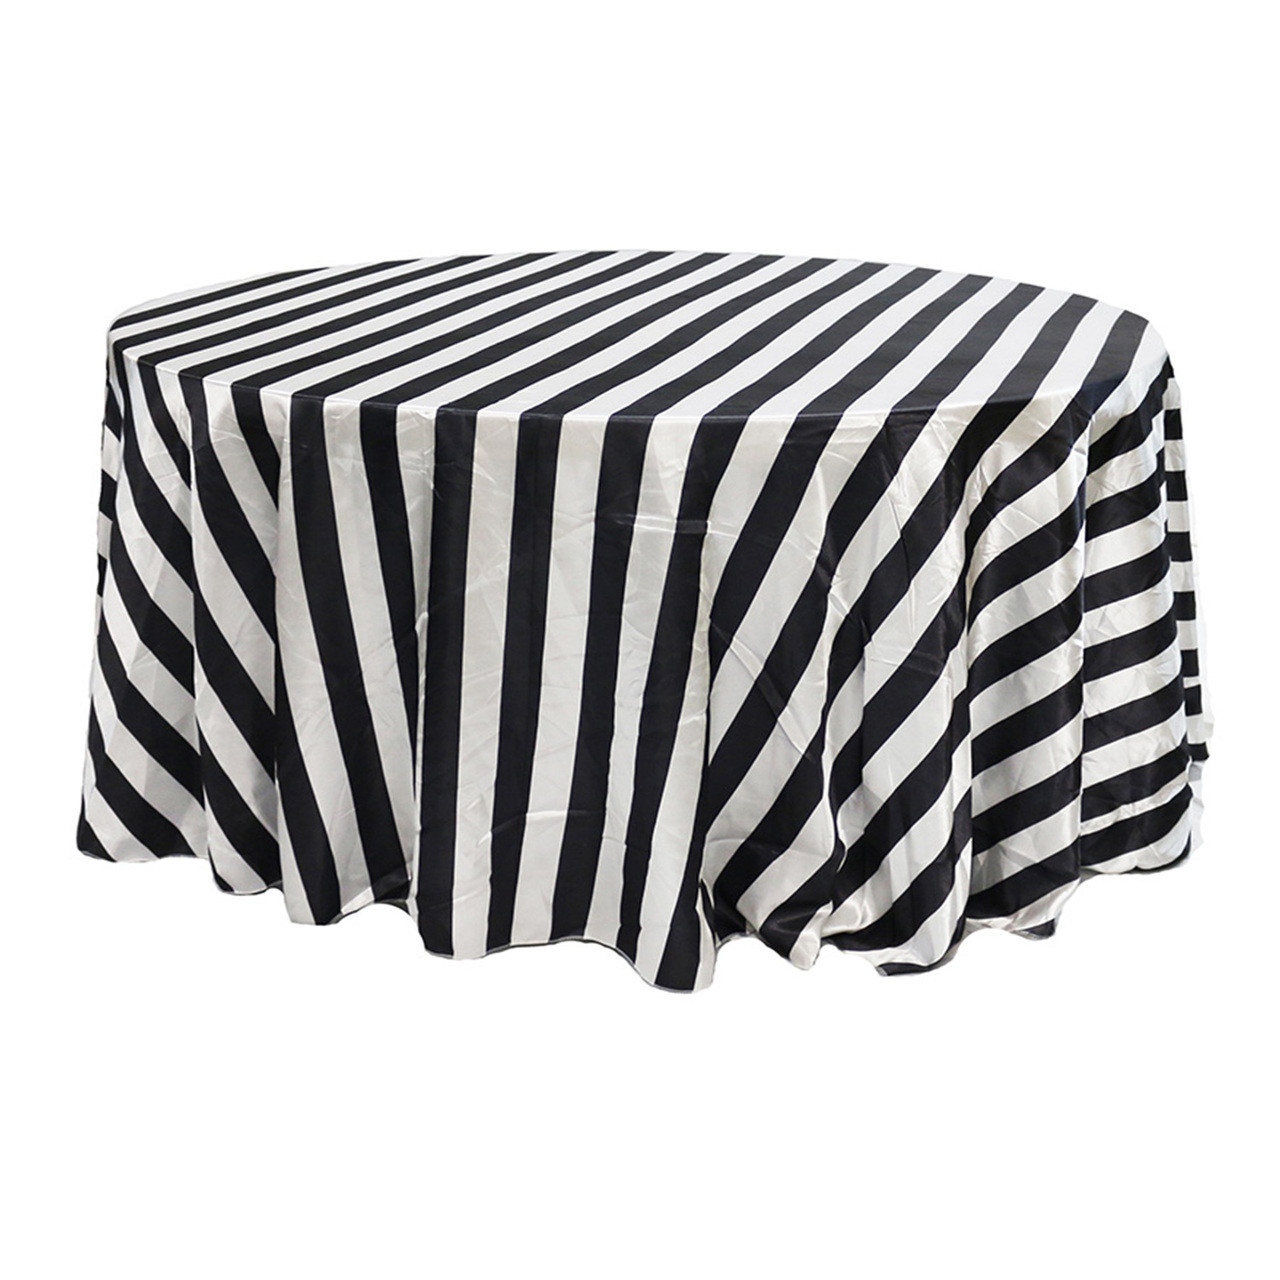 Pleasing 132 Inch Satin Round Tablecloth Black White Striped Home Interior And Landscaping Synyenasavecom